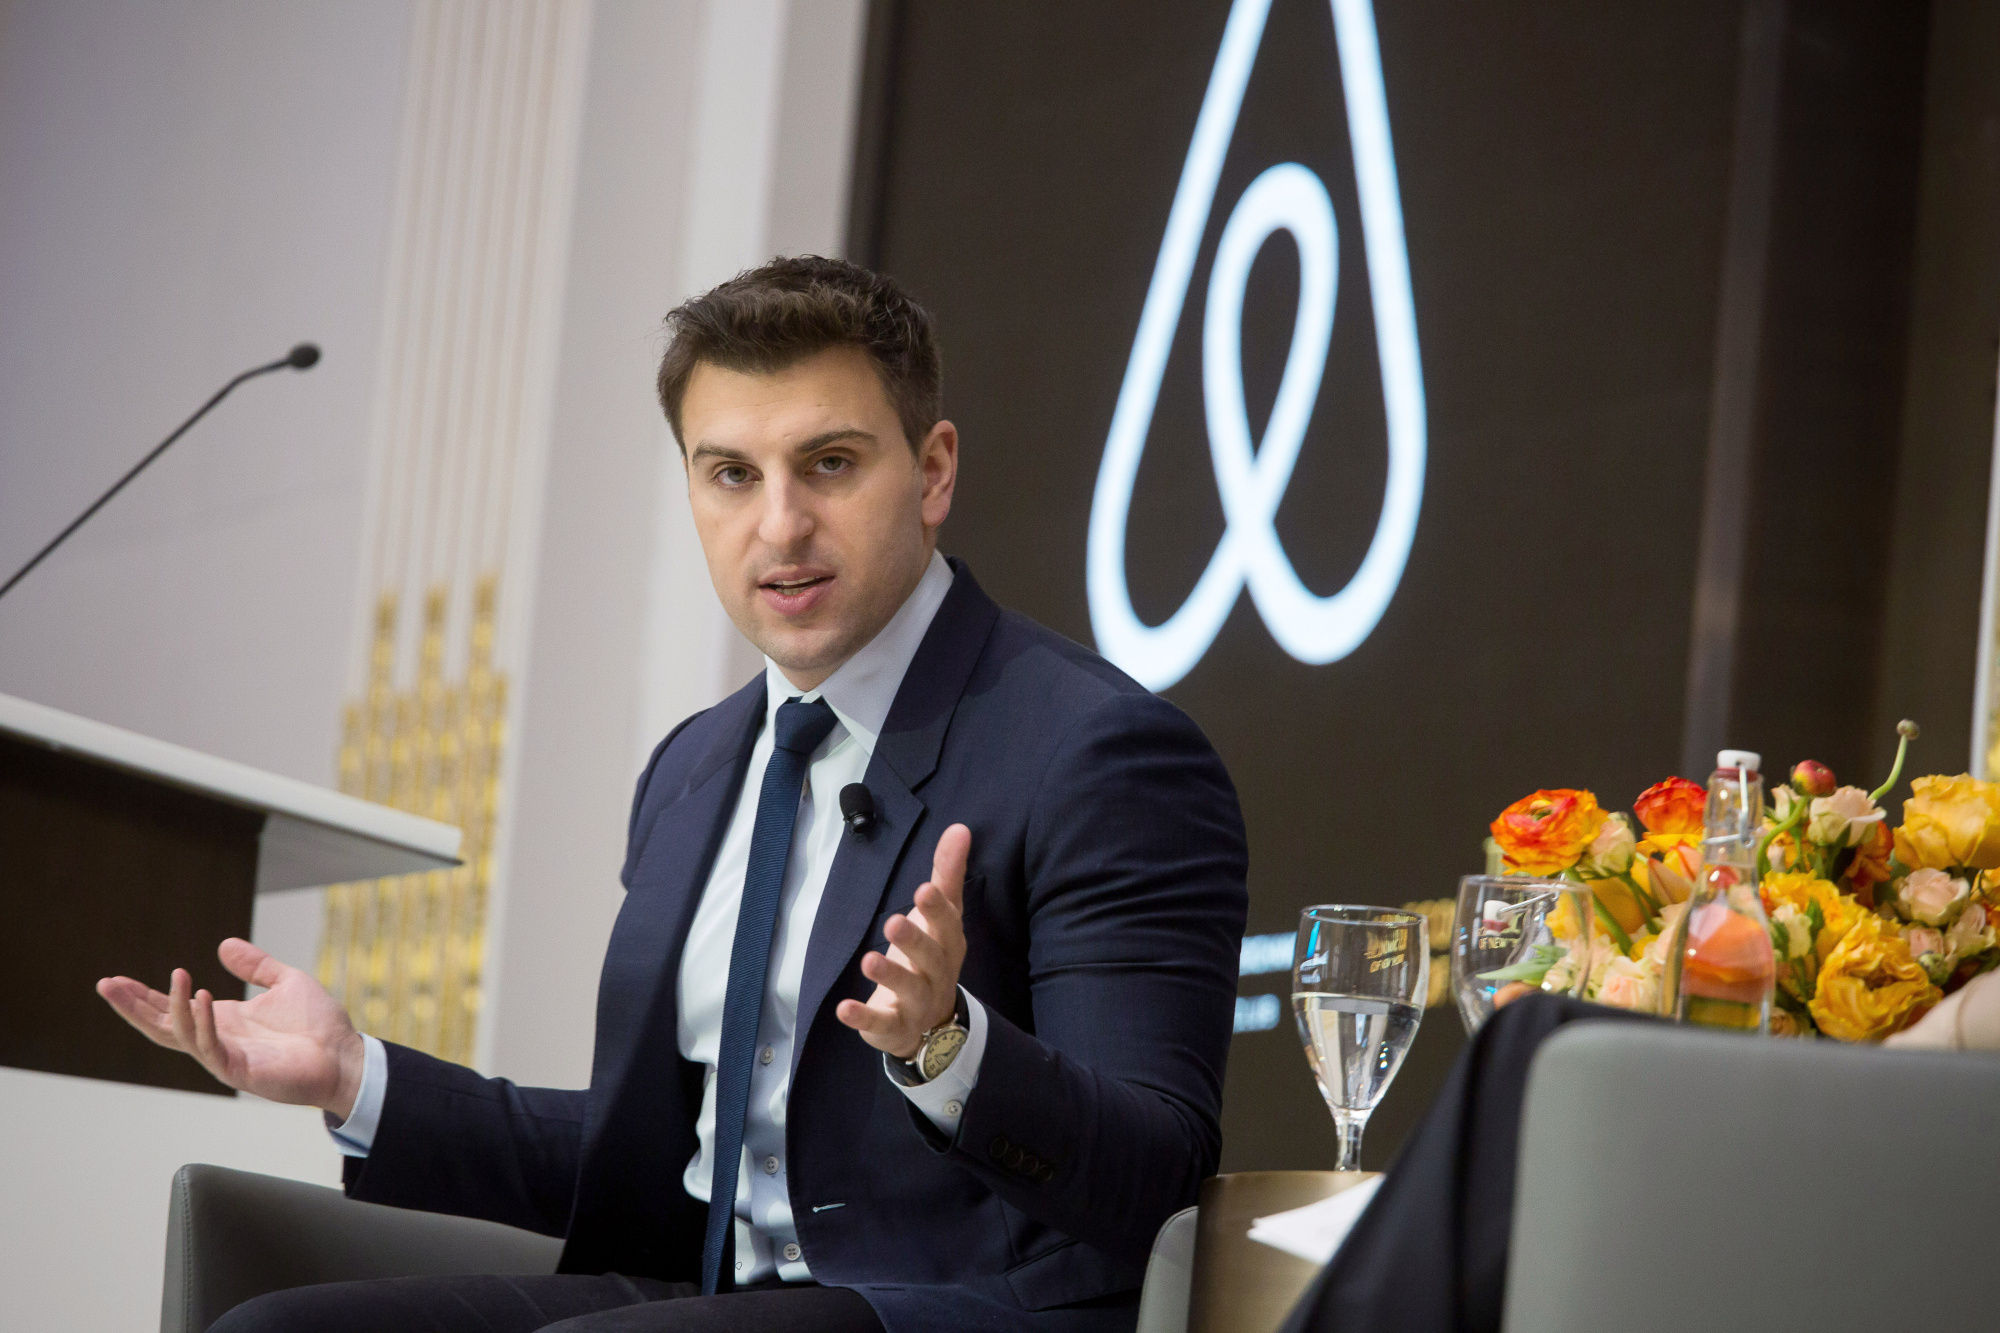 Airbnb Inc. Chief Executive Officer Brian Chesky Speaks At The Economic Club Of New York